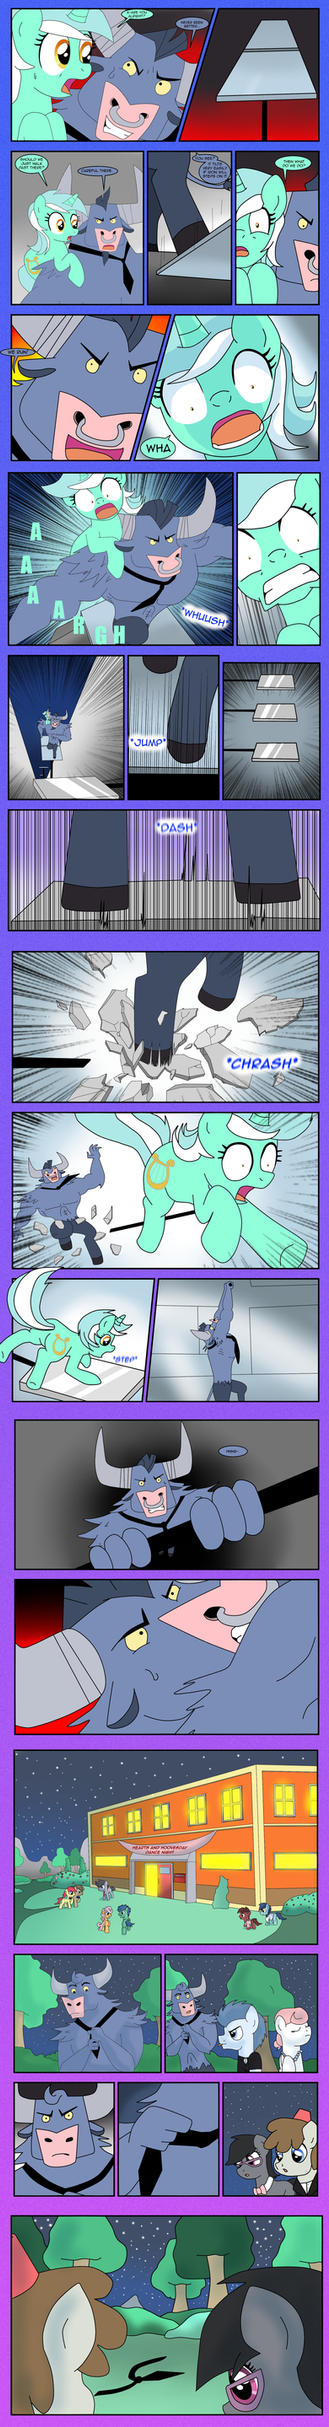 Doctor Whooves - Twists and Turns Pt 7 by Edowaado